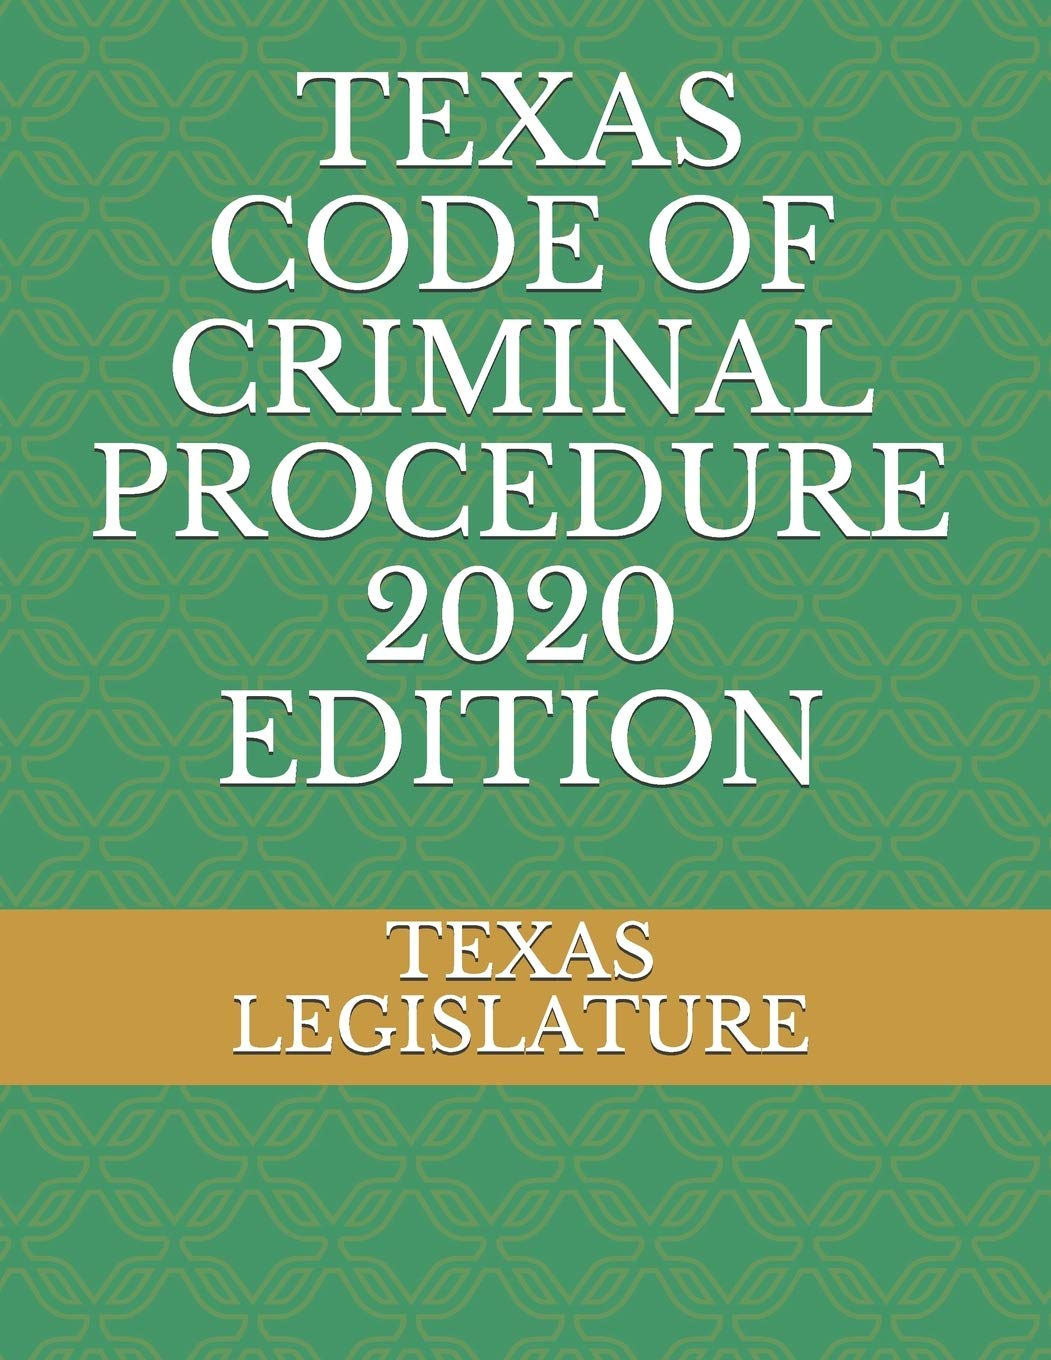 Image OfTEXAS CODE OF CRIMINAL PROCEDURE 2020 EDITION